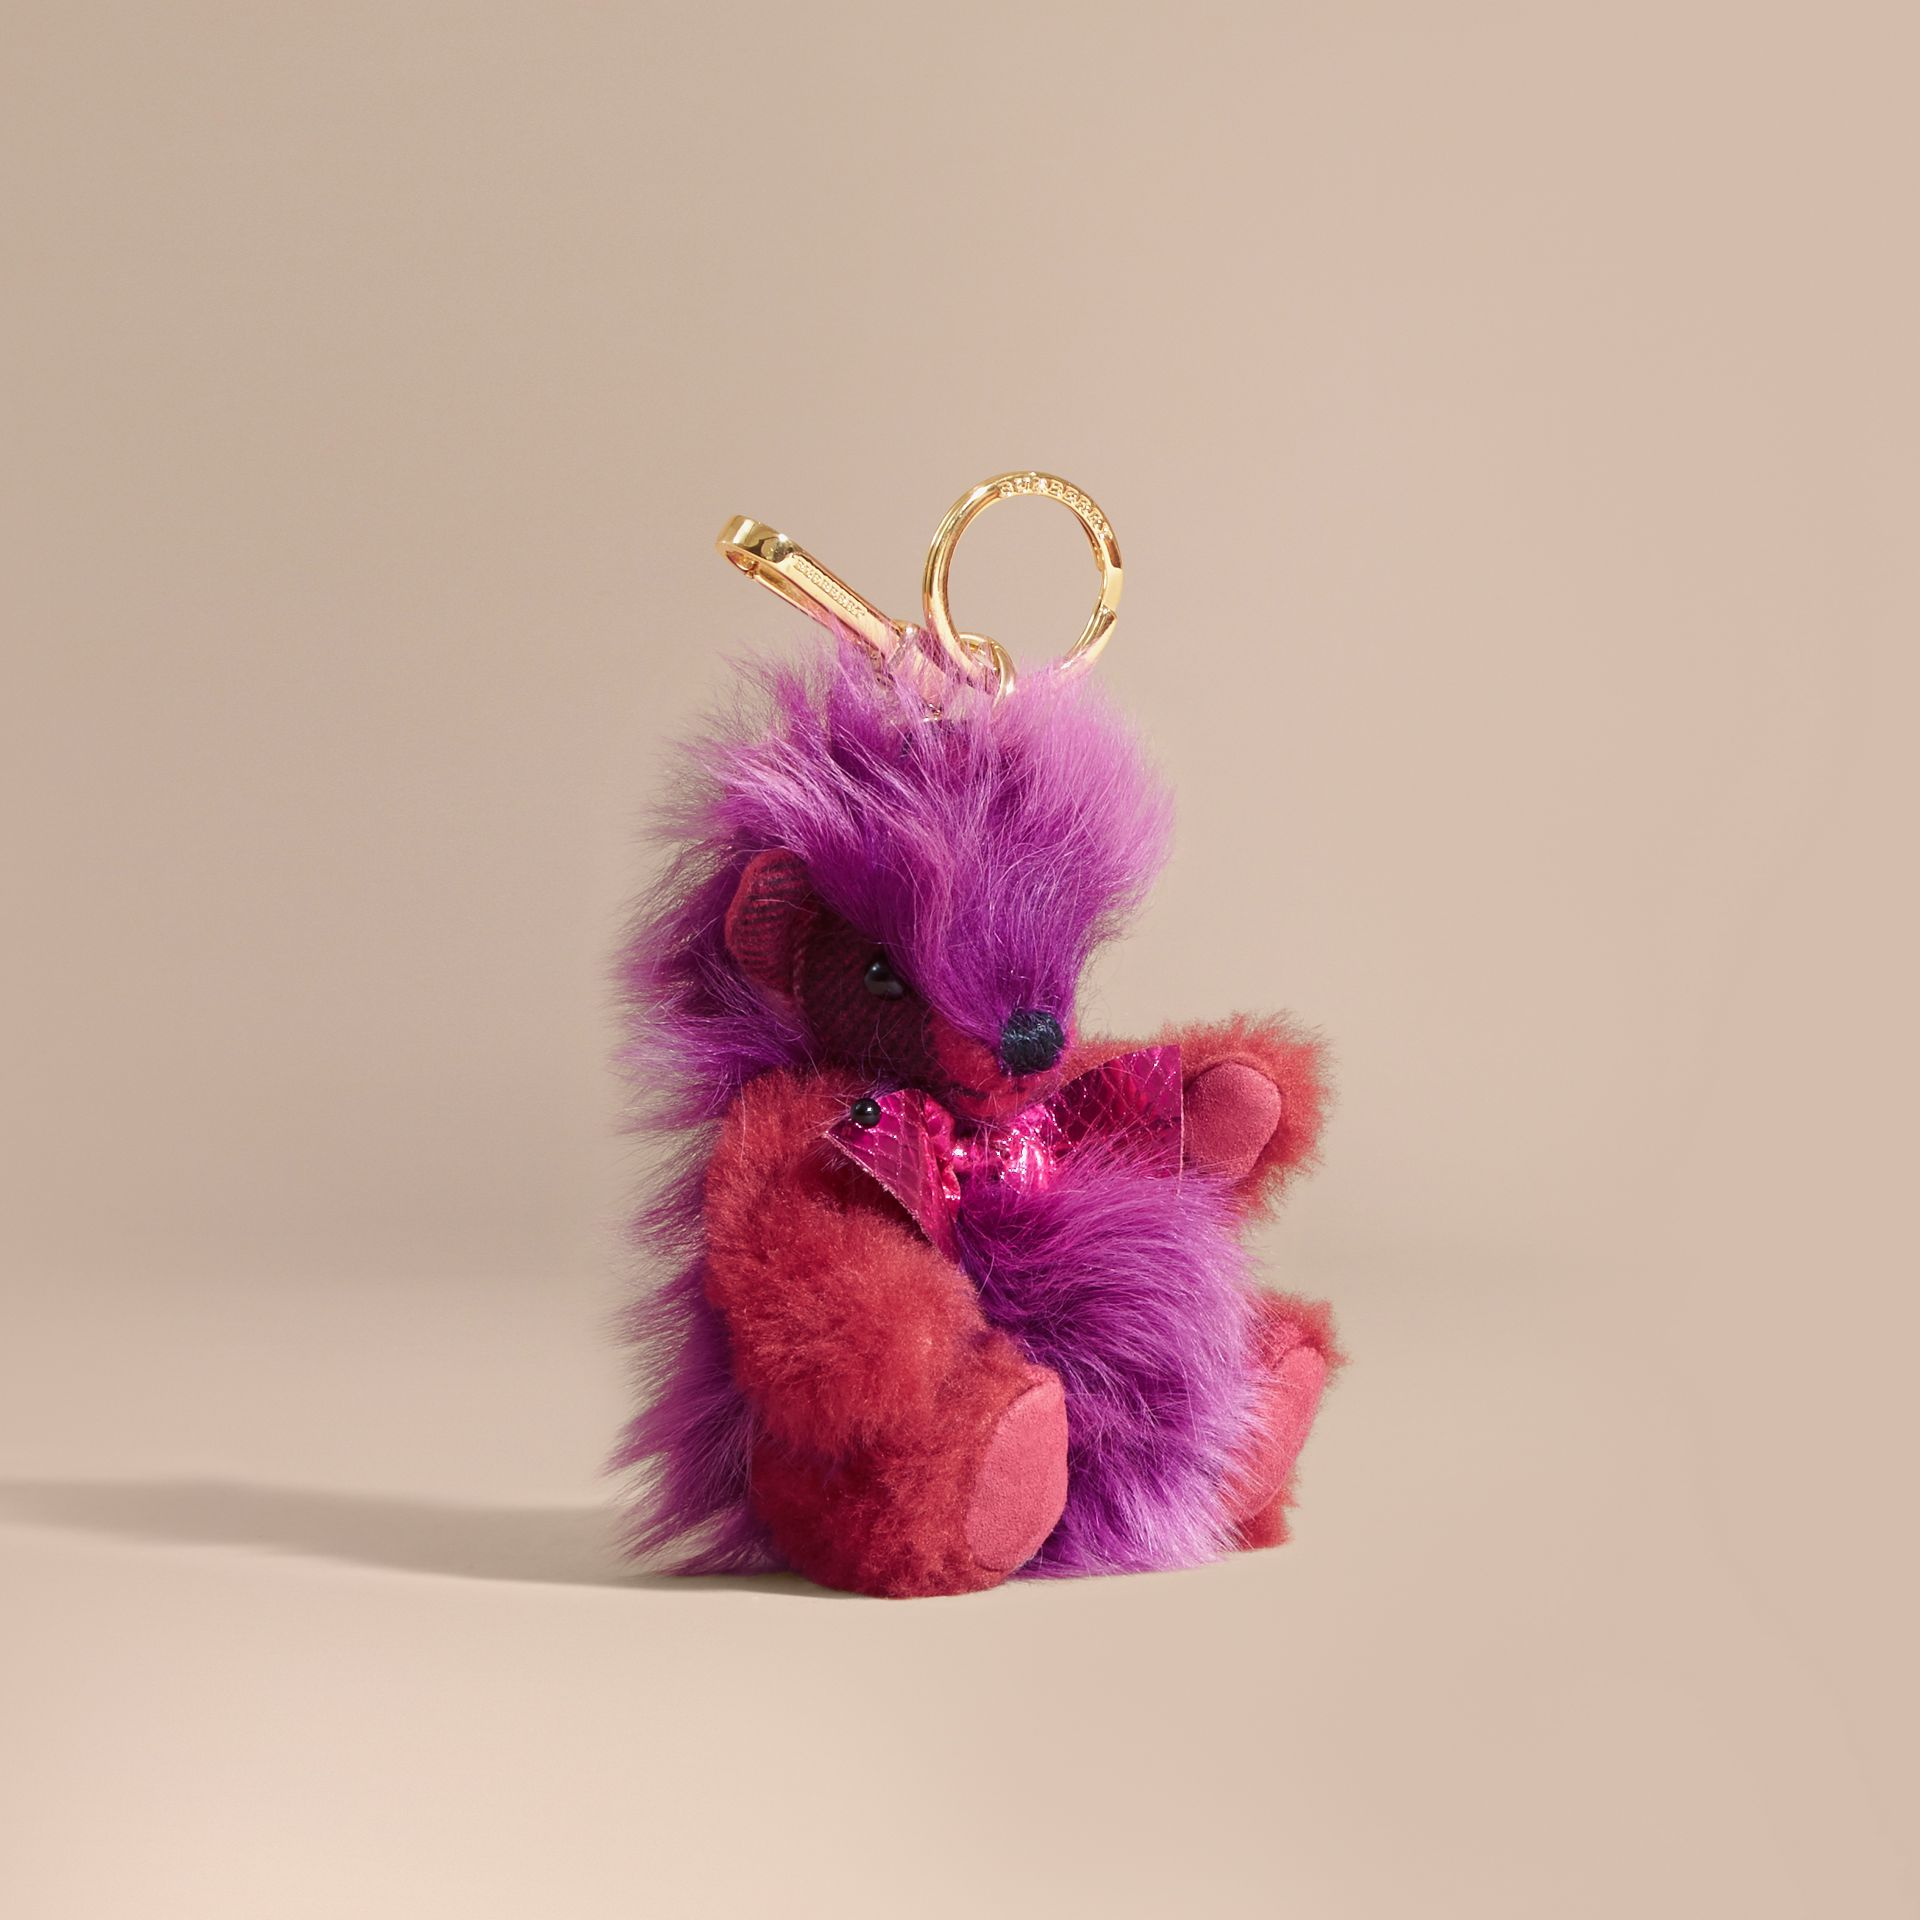 Thomas Bear Pom-Pom Charm in Check Cashmere in Fuchsia Pink - Women | Burberry - gallery image 0